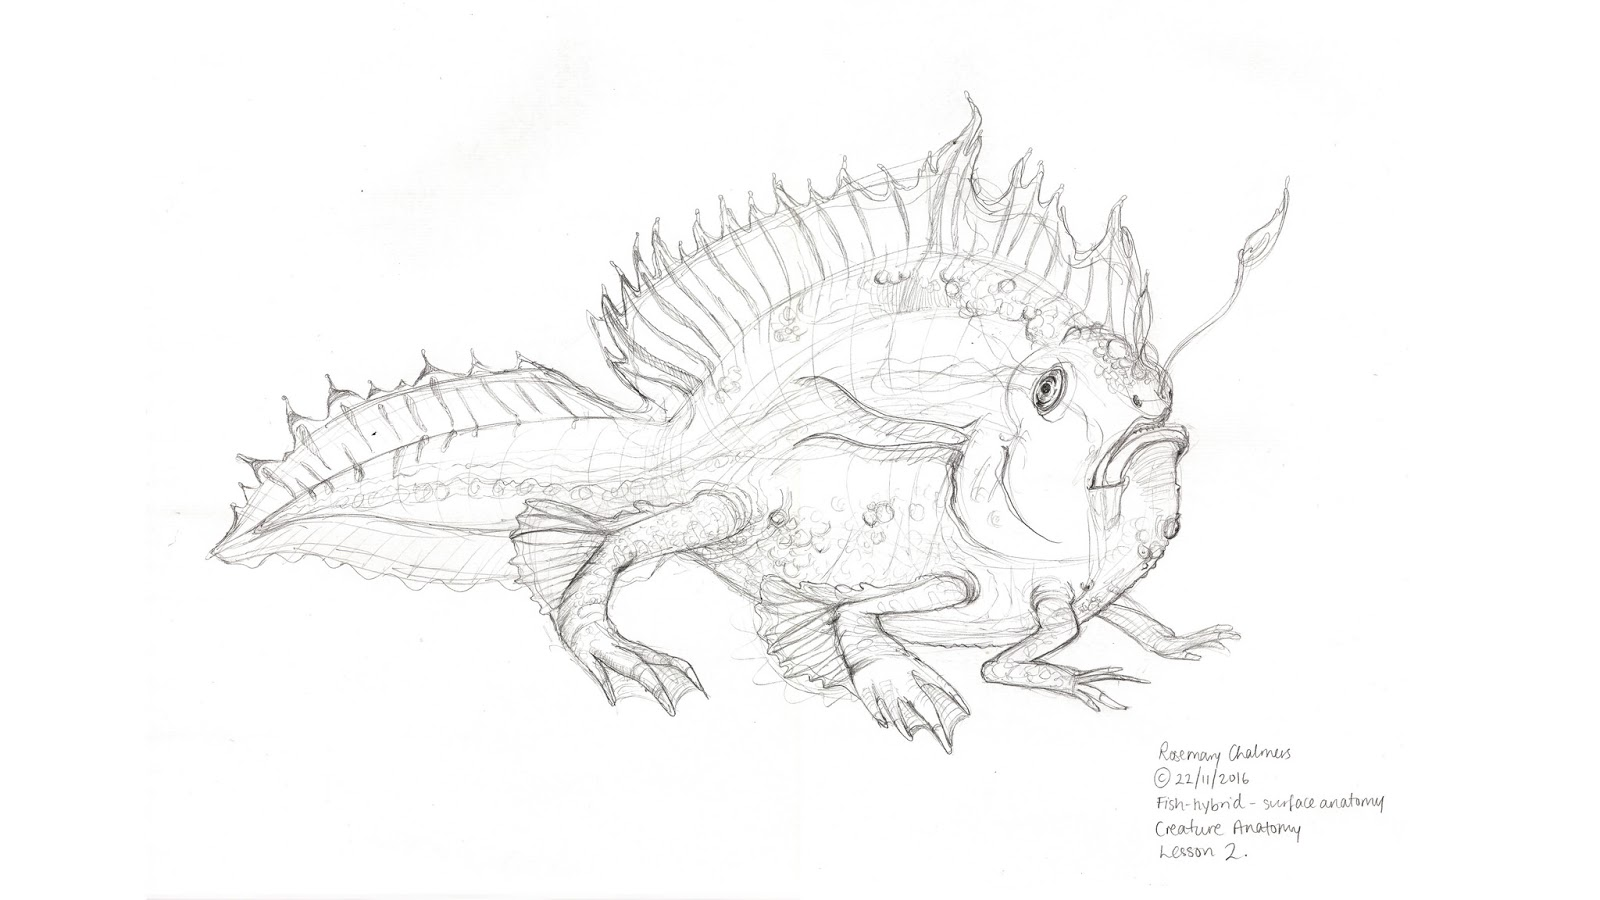 Rosemary Chalmers — concept art and illustration: Creature Anatomy ...